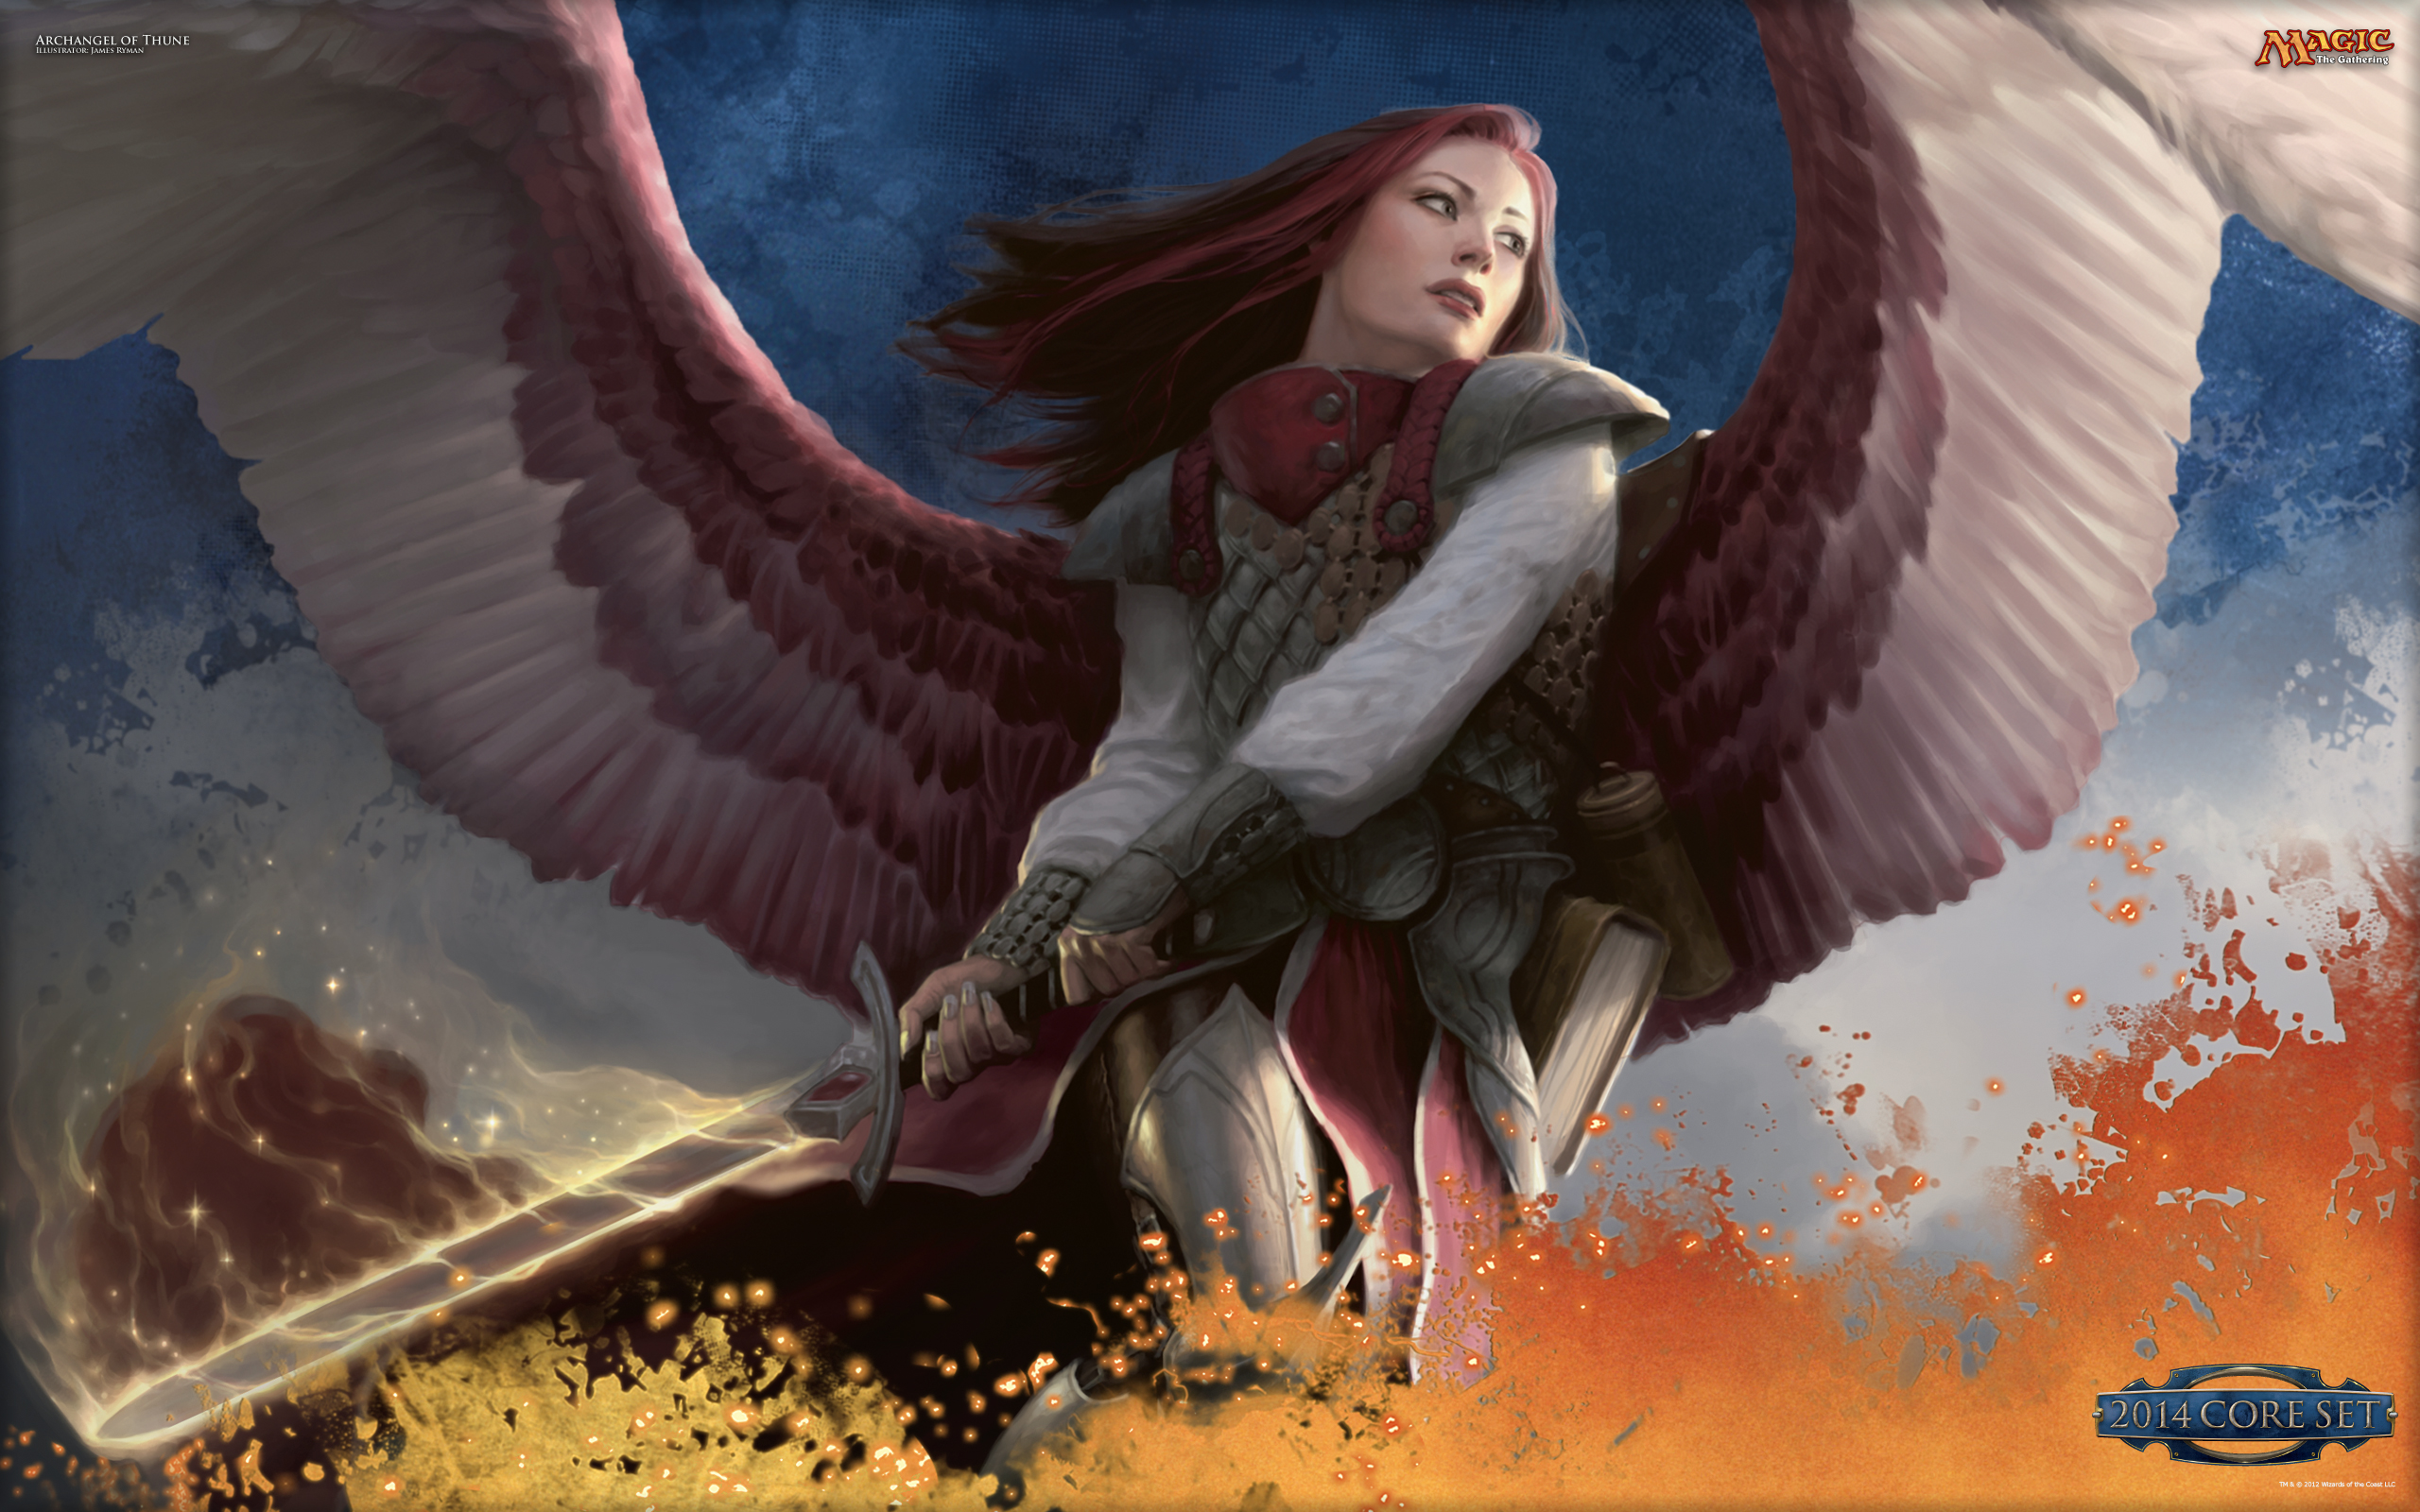 download Wallpaper of the Week Archangel of Thune Daily MTG 2560x1600